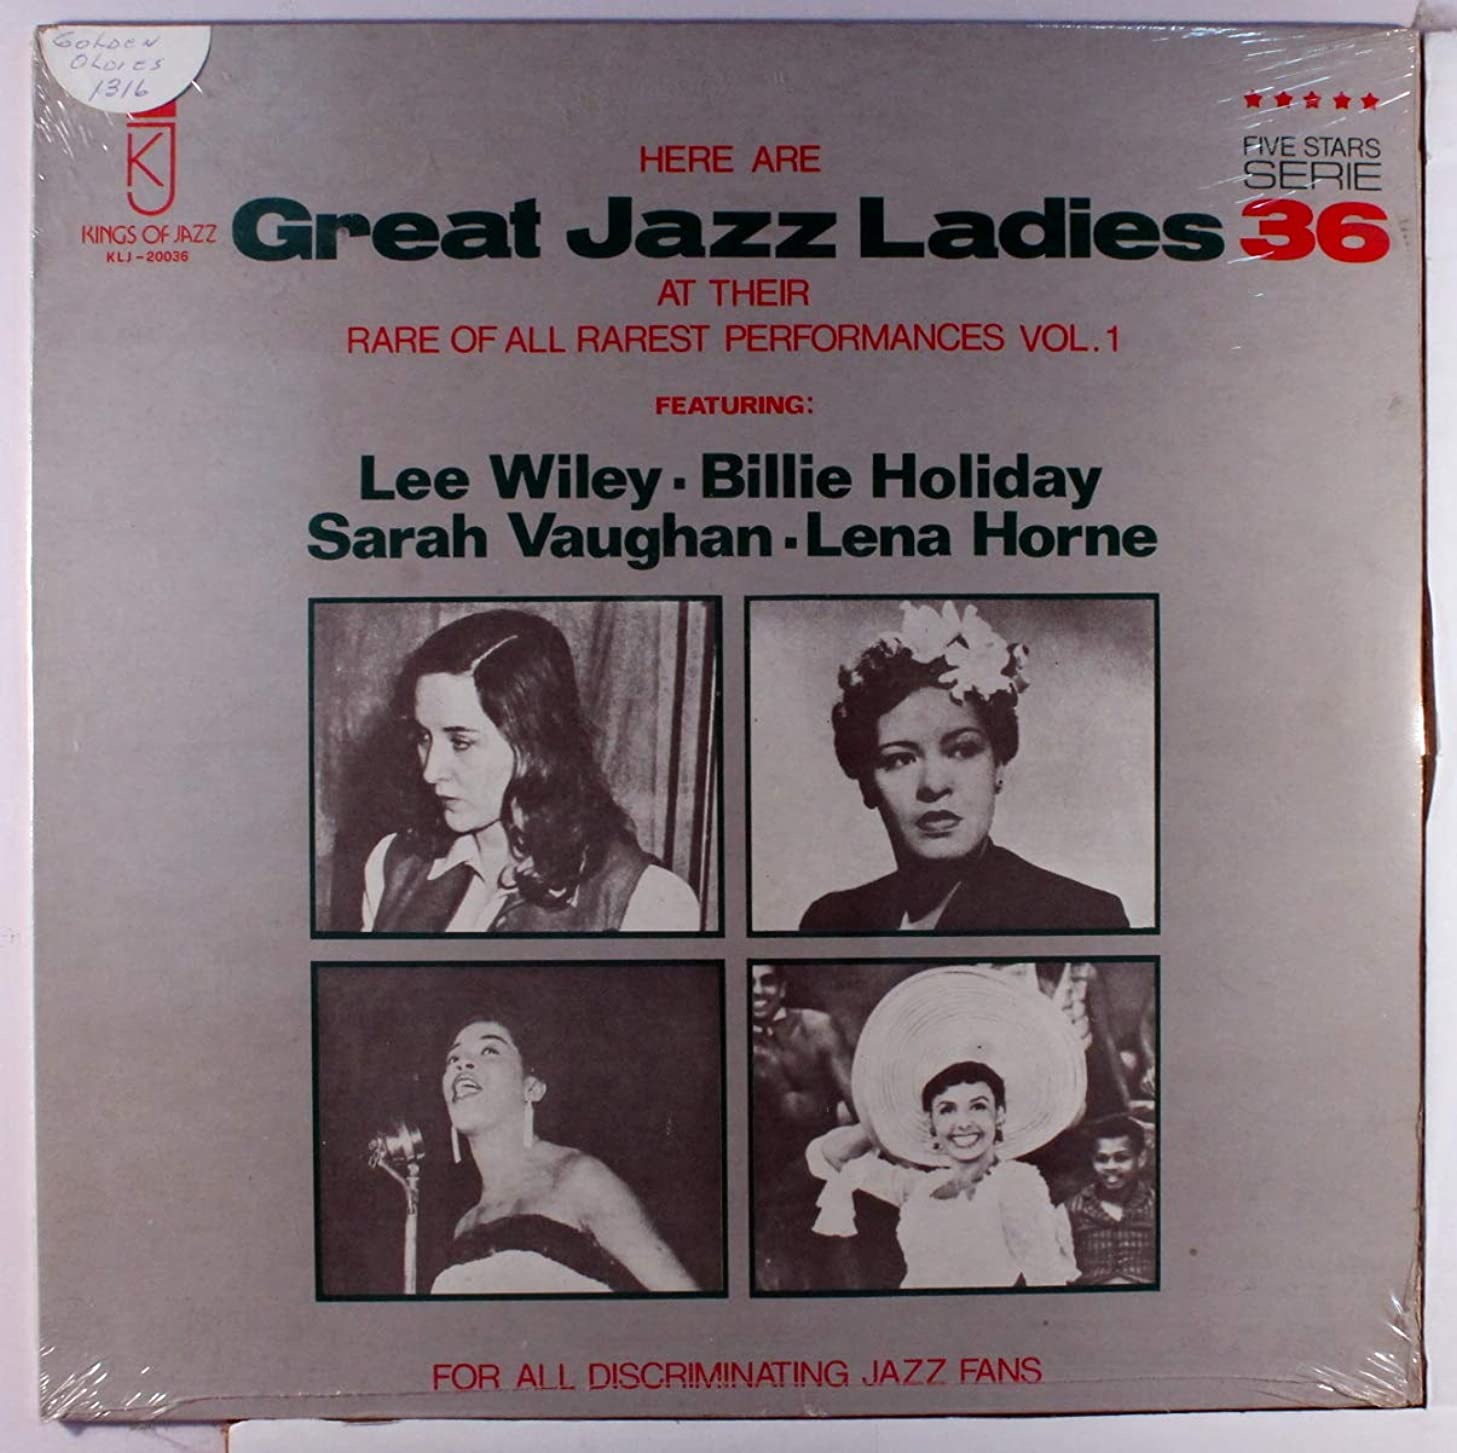 great jazz ladies, vol. 1 LP